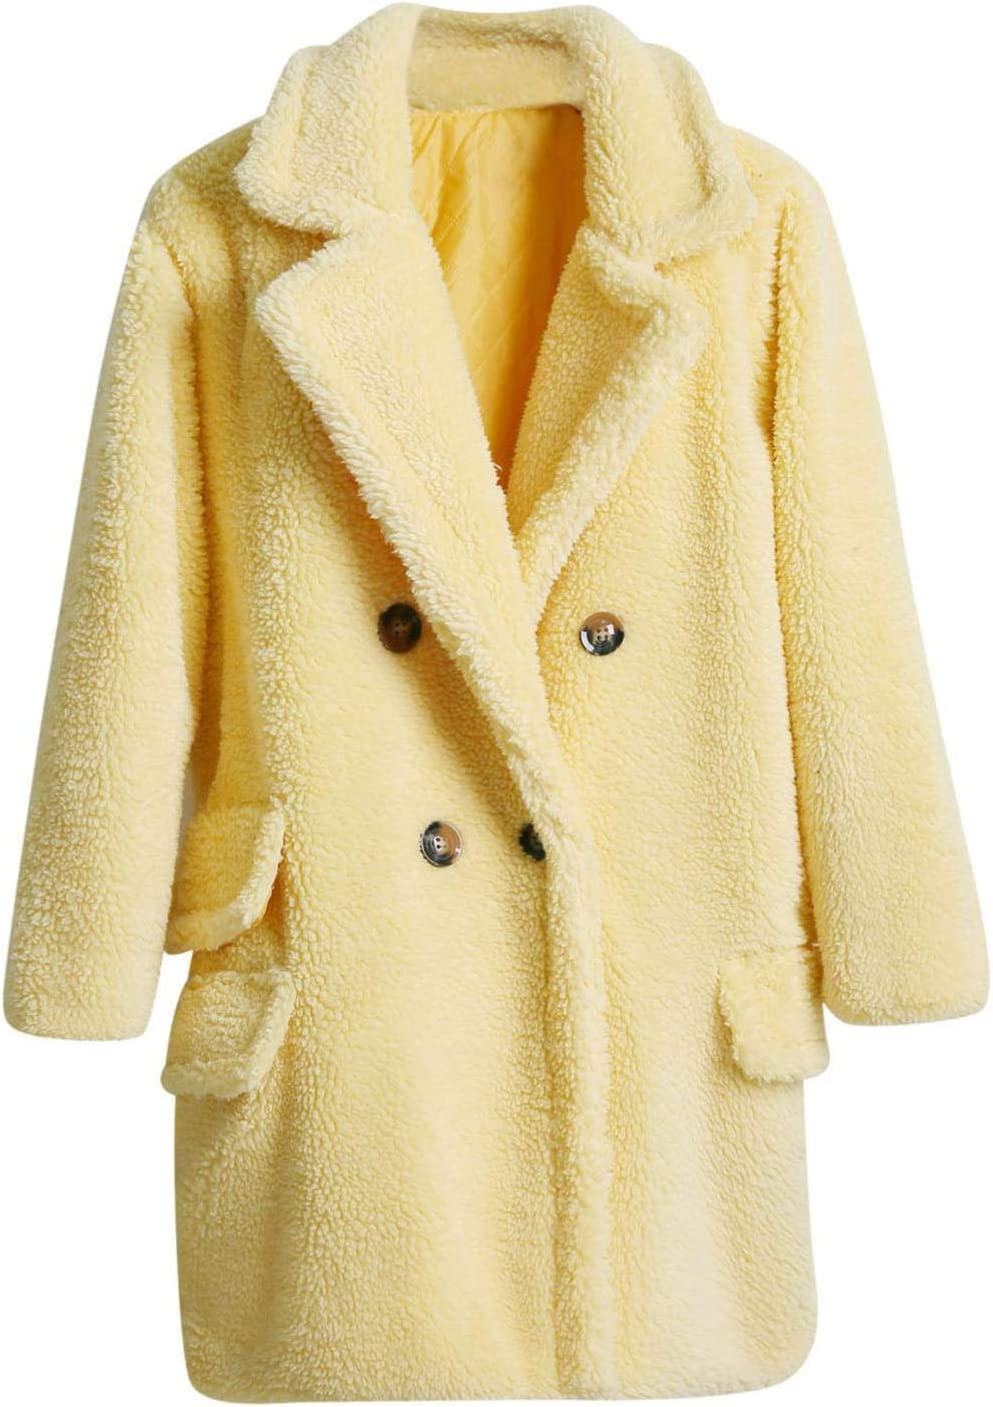 Smileyth Women's Thick 2021 Solid Overcoat Max 72% OFF Lapel Double Long B Sleeve